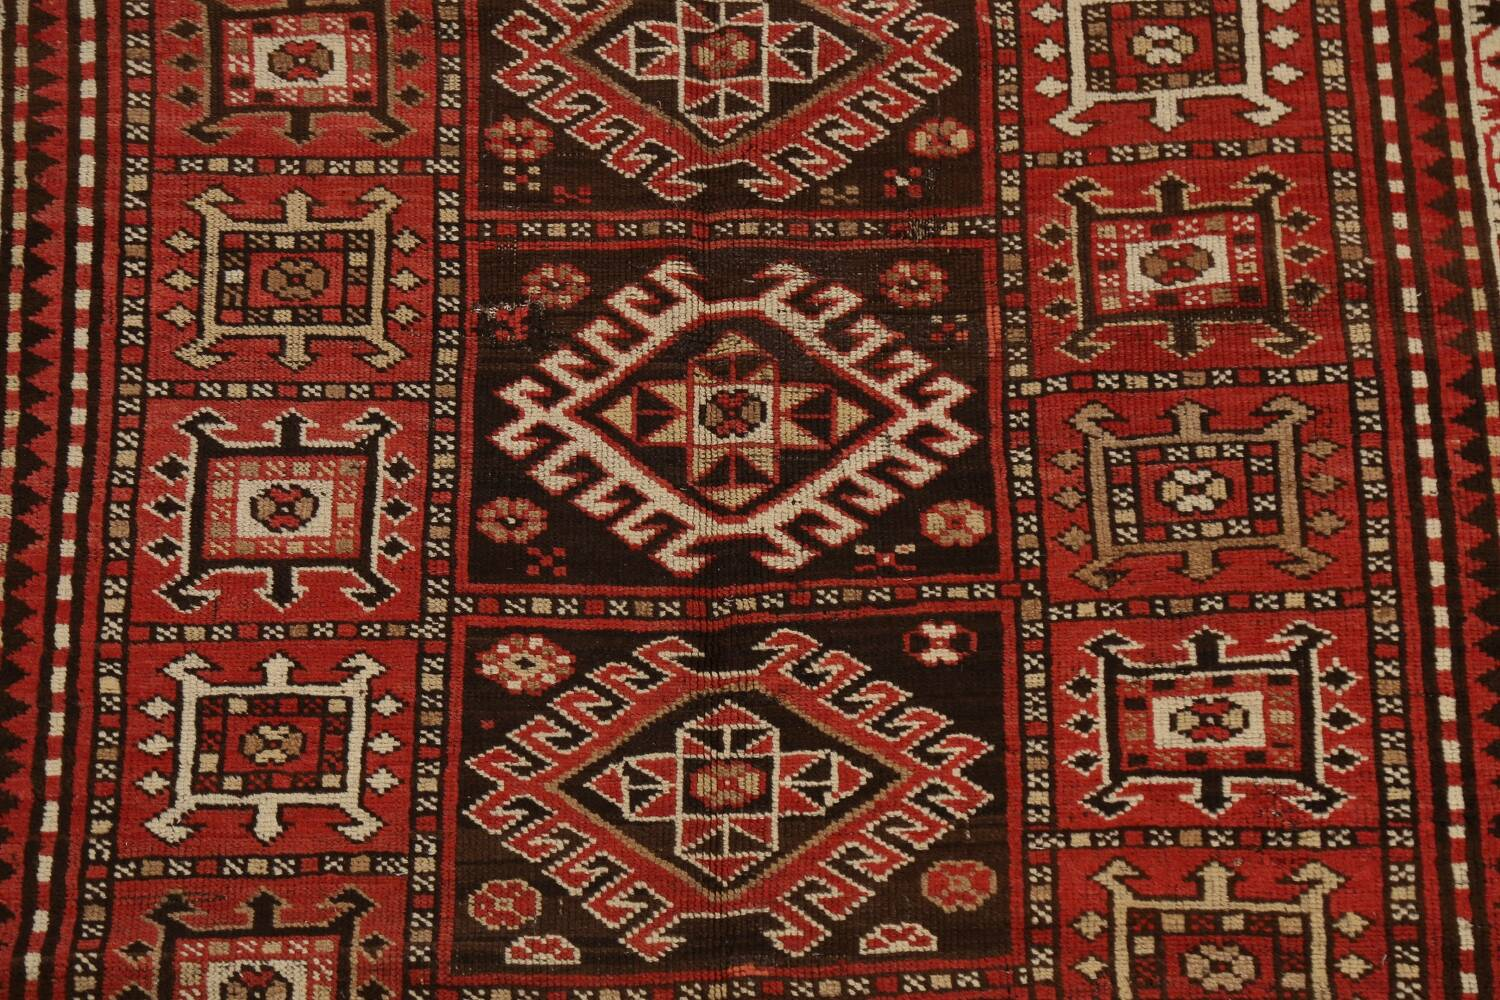 Vegetable Dye Geometric Kazak Oriental Area Rug 5x8 image 4